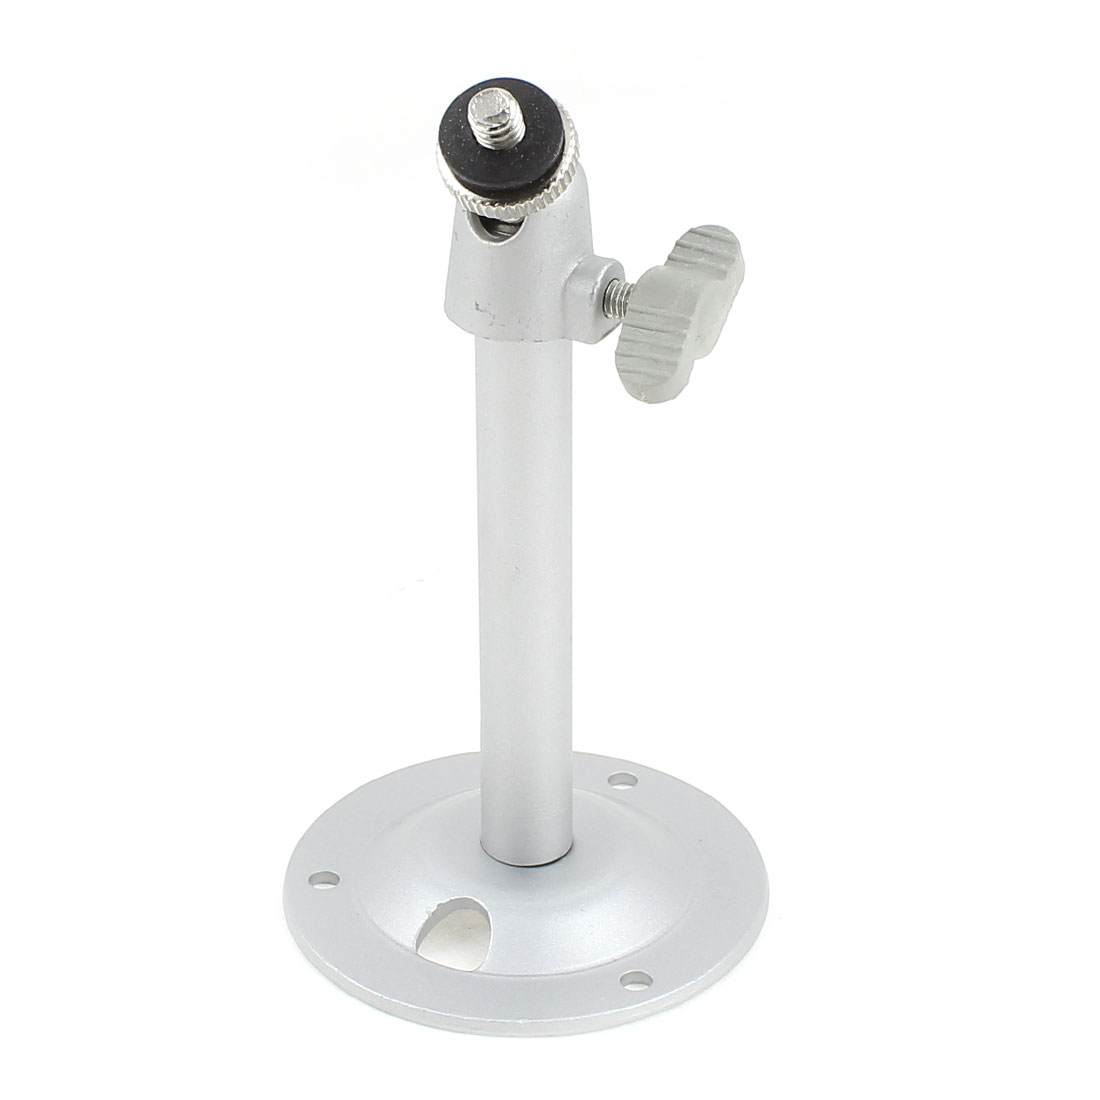 Sliver Tone Metal Security CCTV CCD Camera Wall Ceiling Mount Bracket